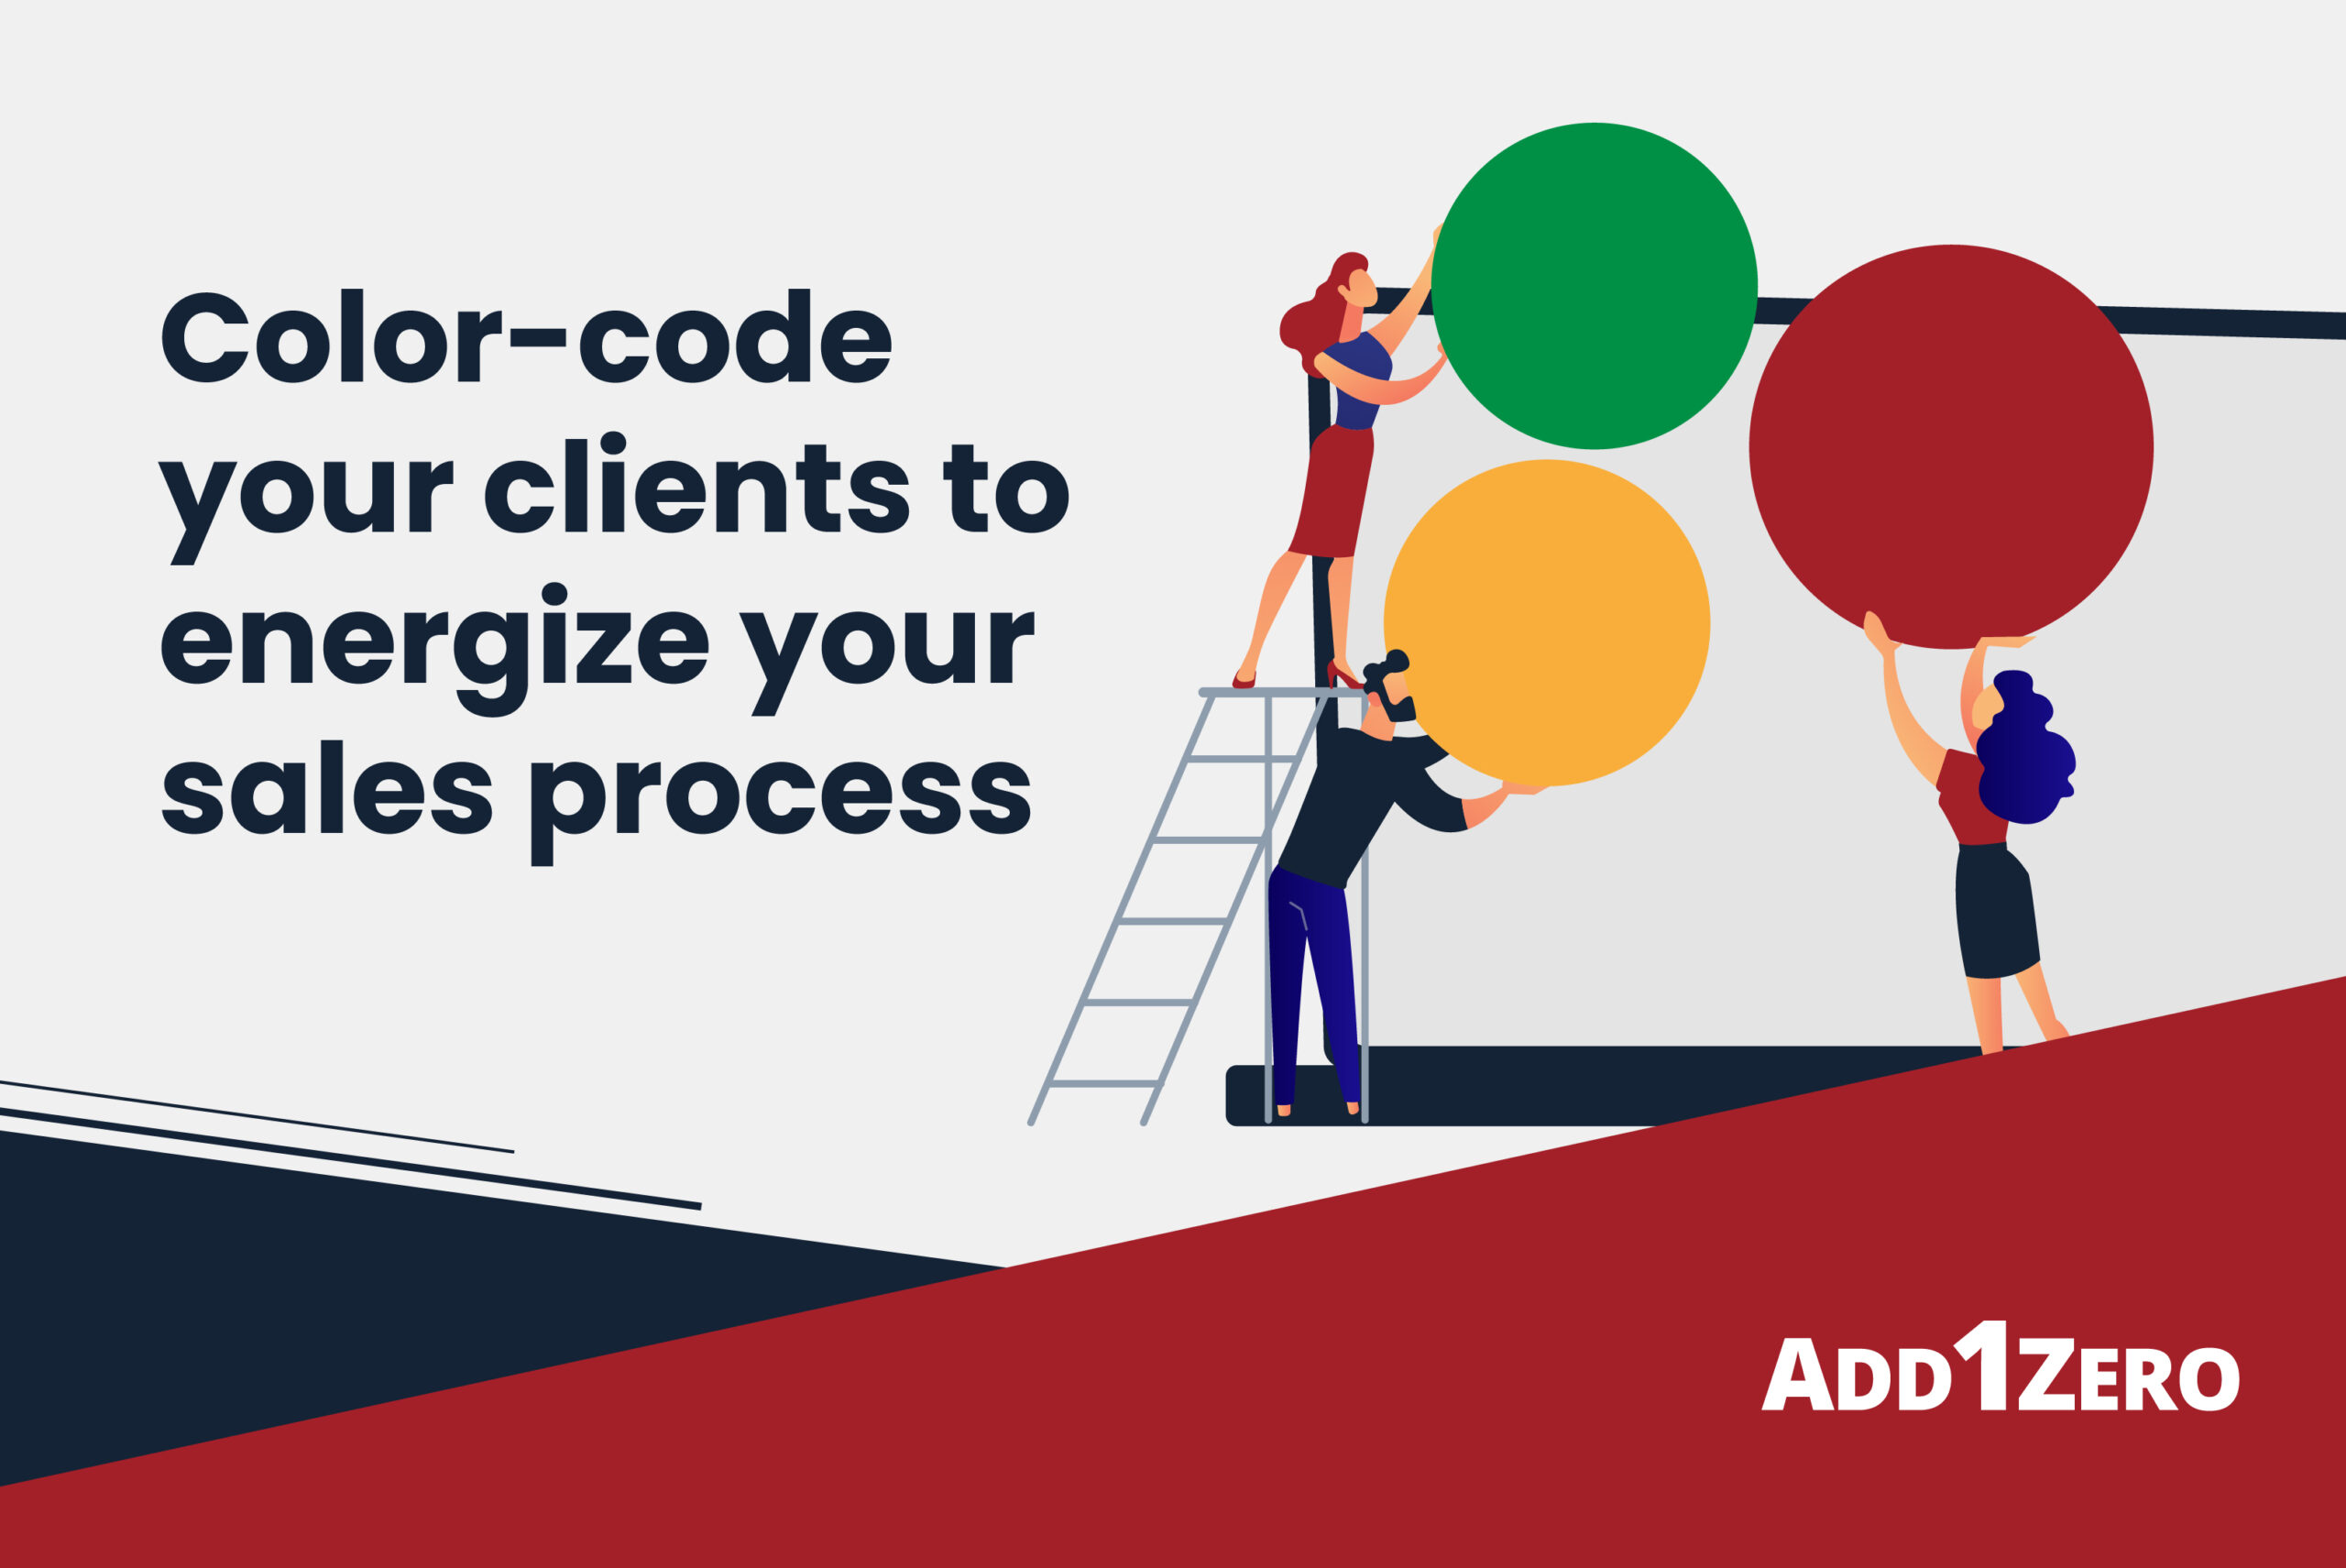 Color-code your clients to energize your sales process